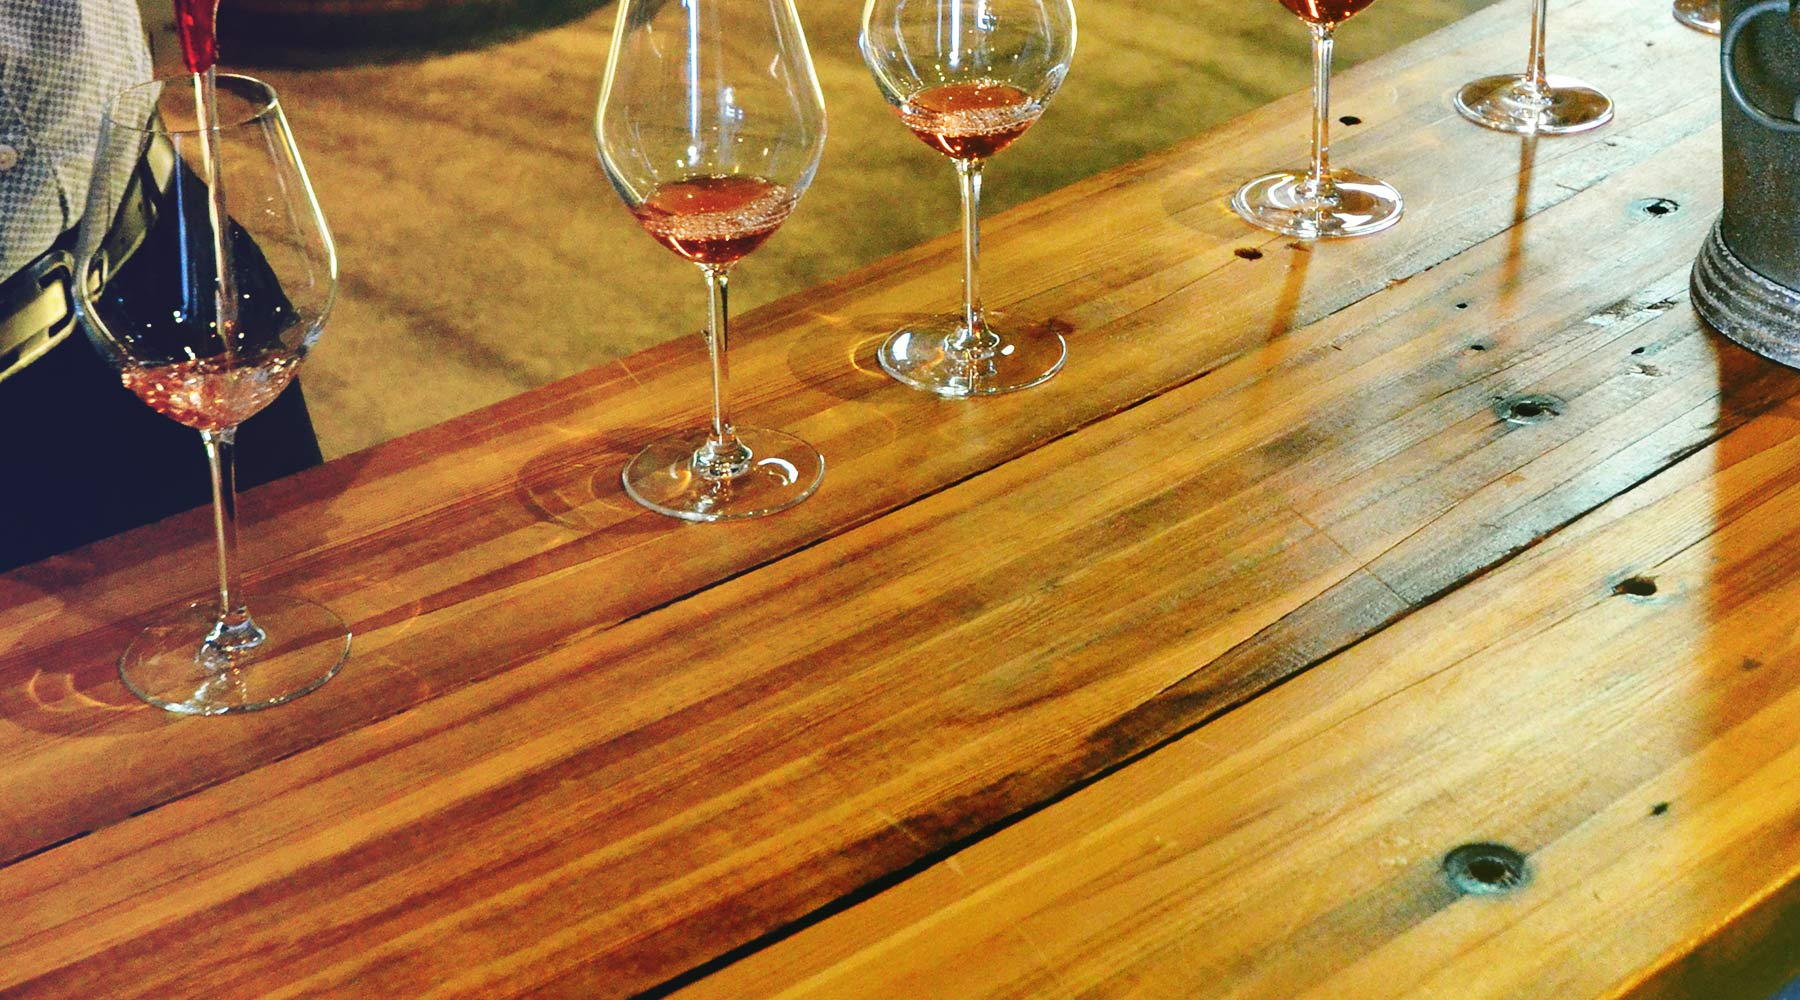 Castle Winery Tour | Just Wine